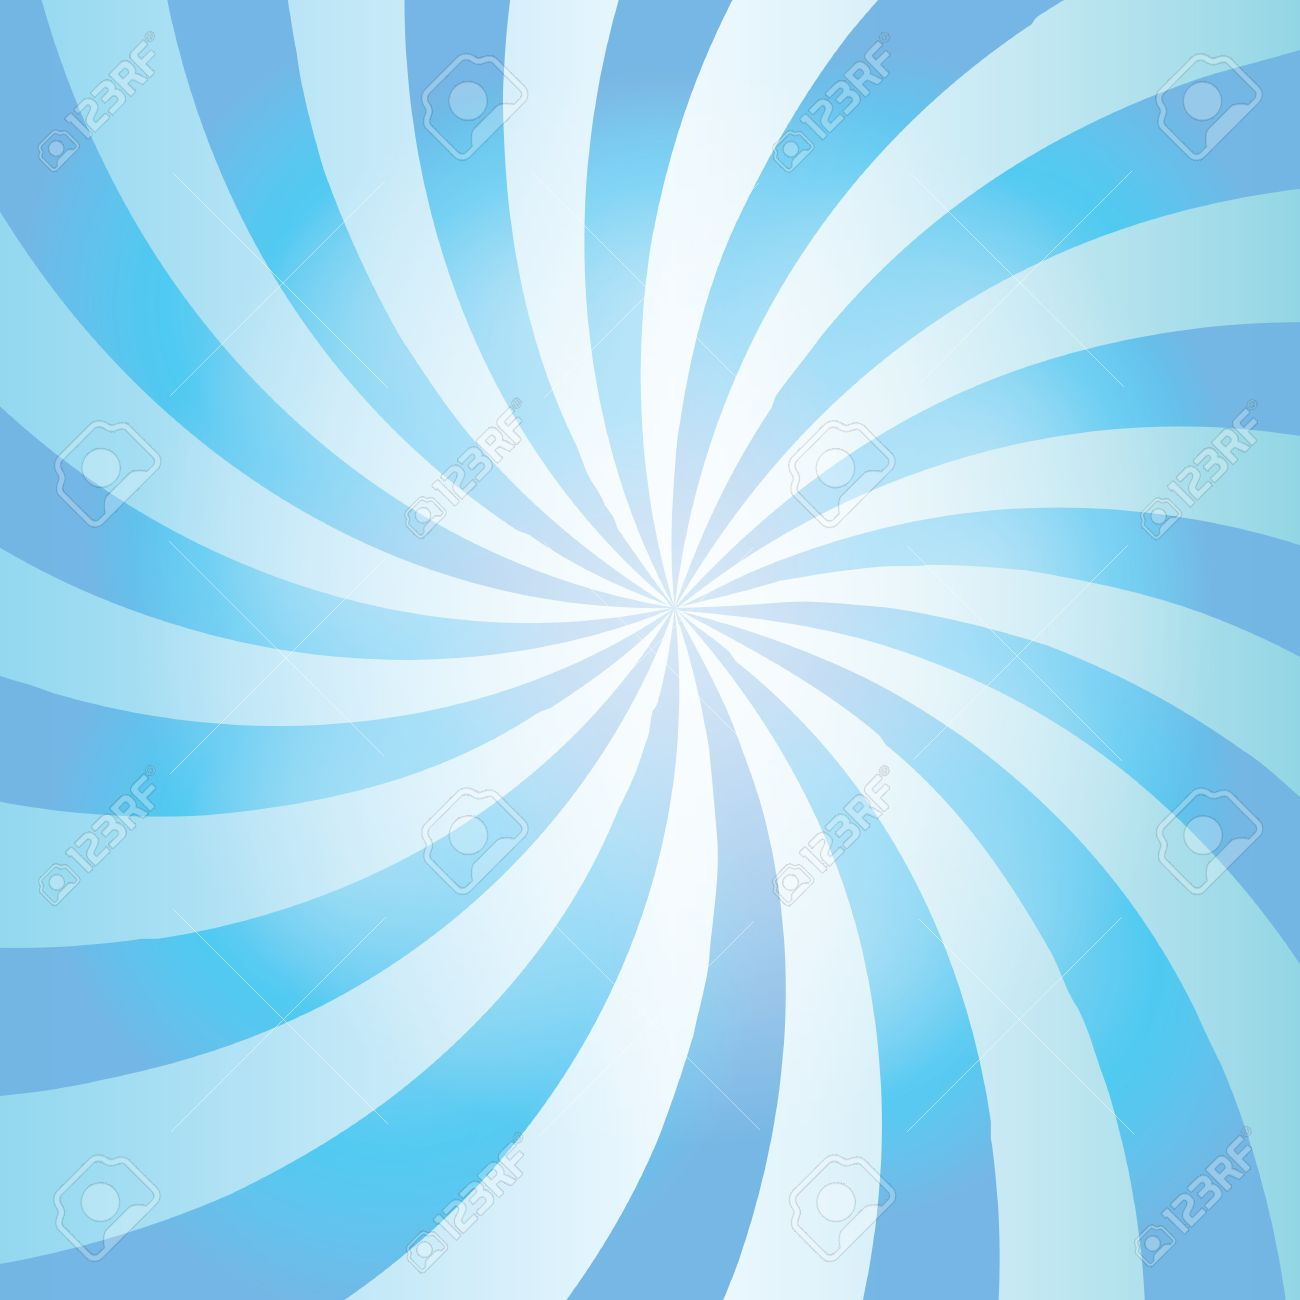 Modern Blue Ray Abstract Animation Background Stock Footage Video ...